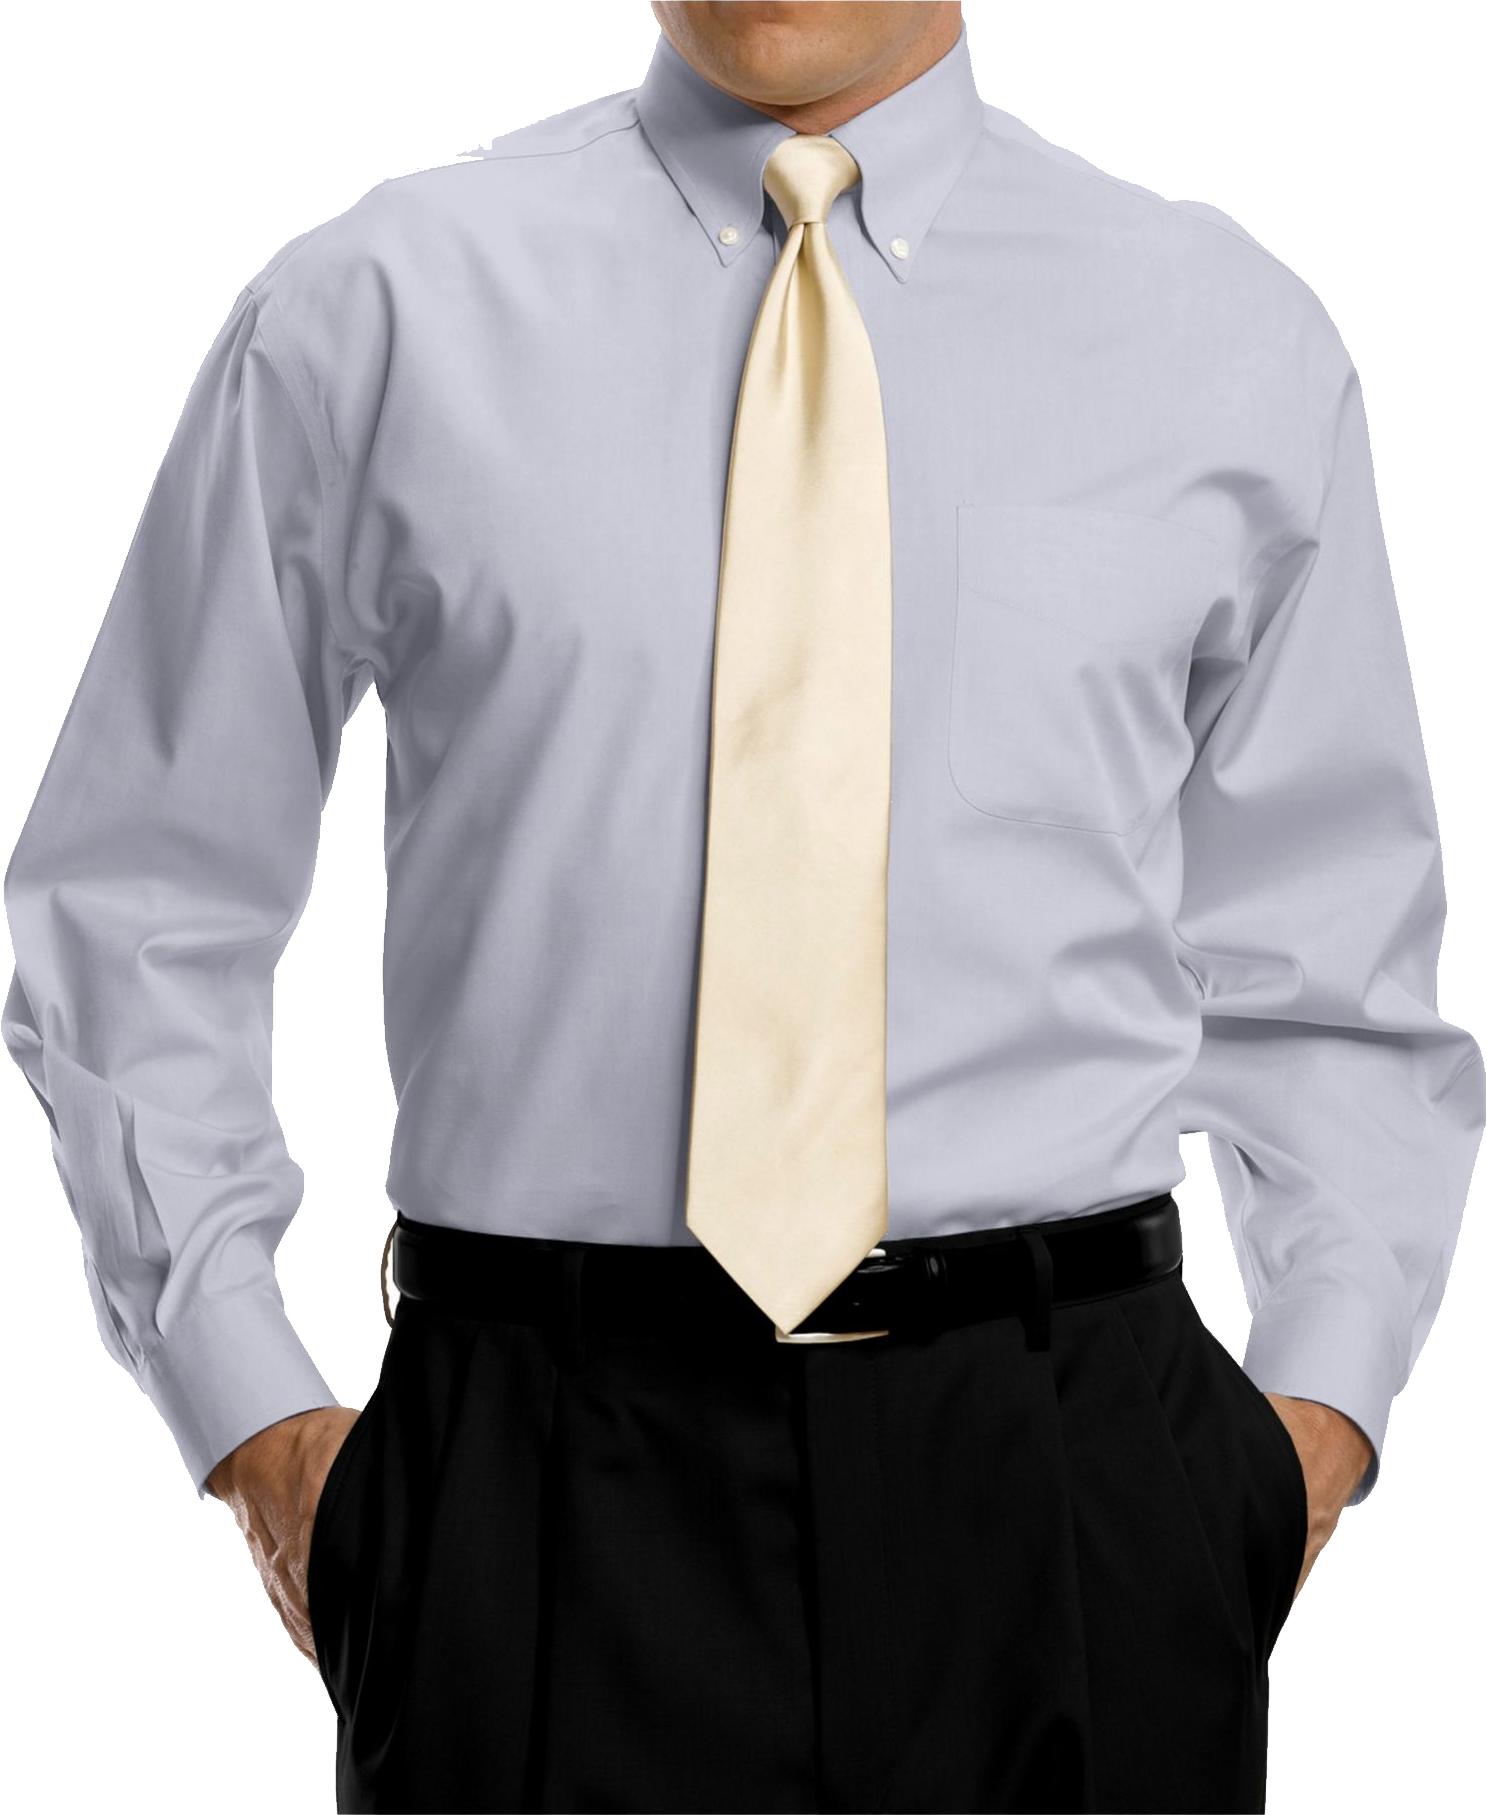 Now you can download Dress Shirt Transparent PNG File